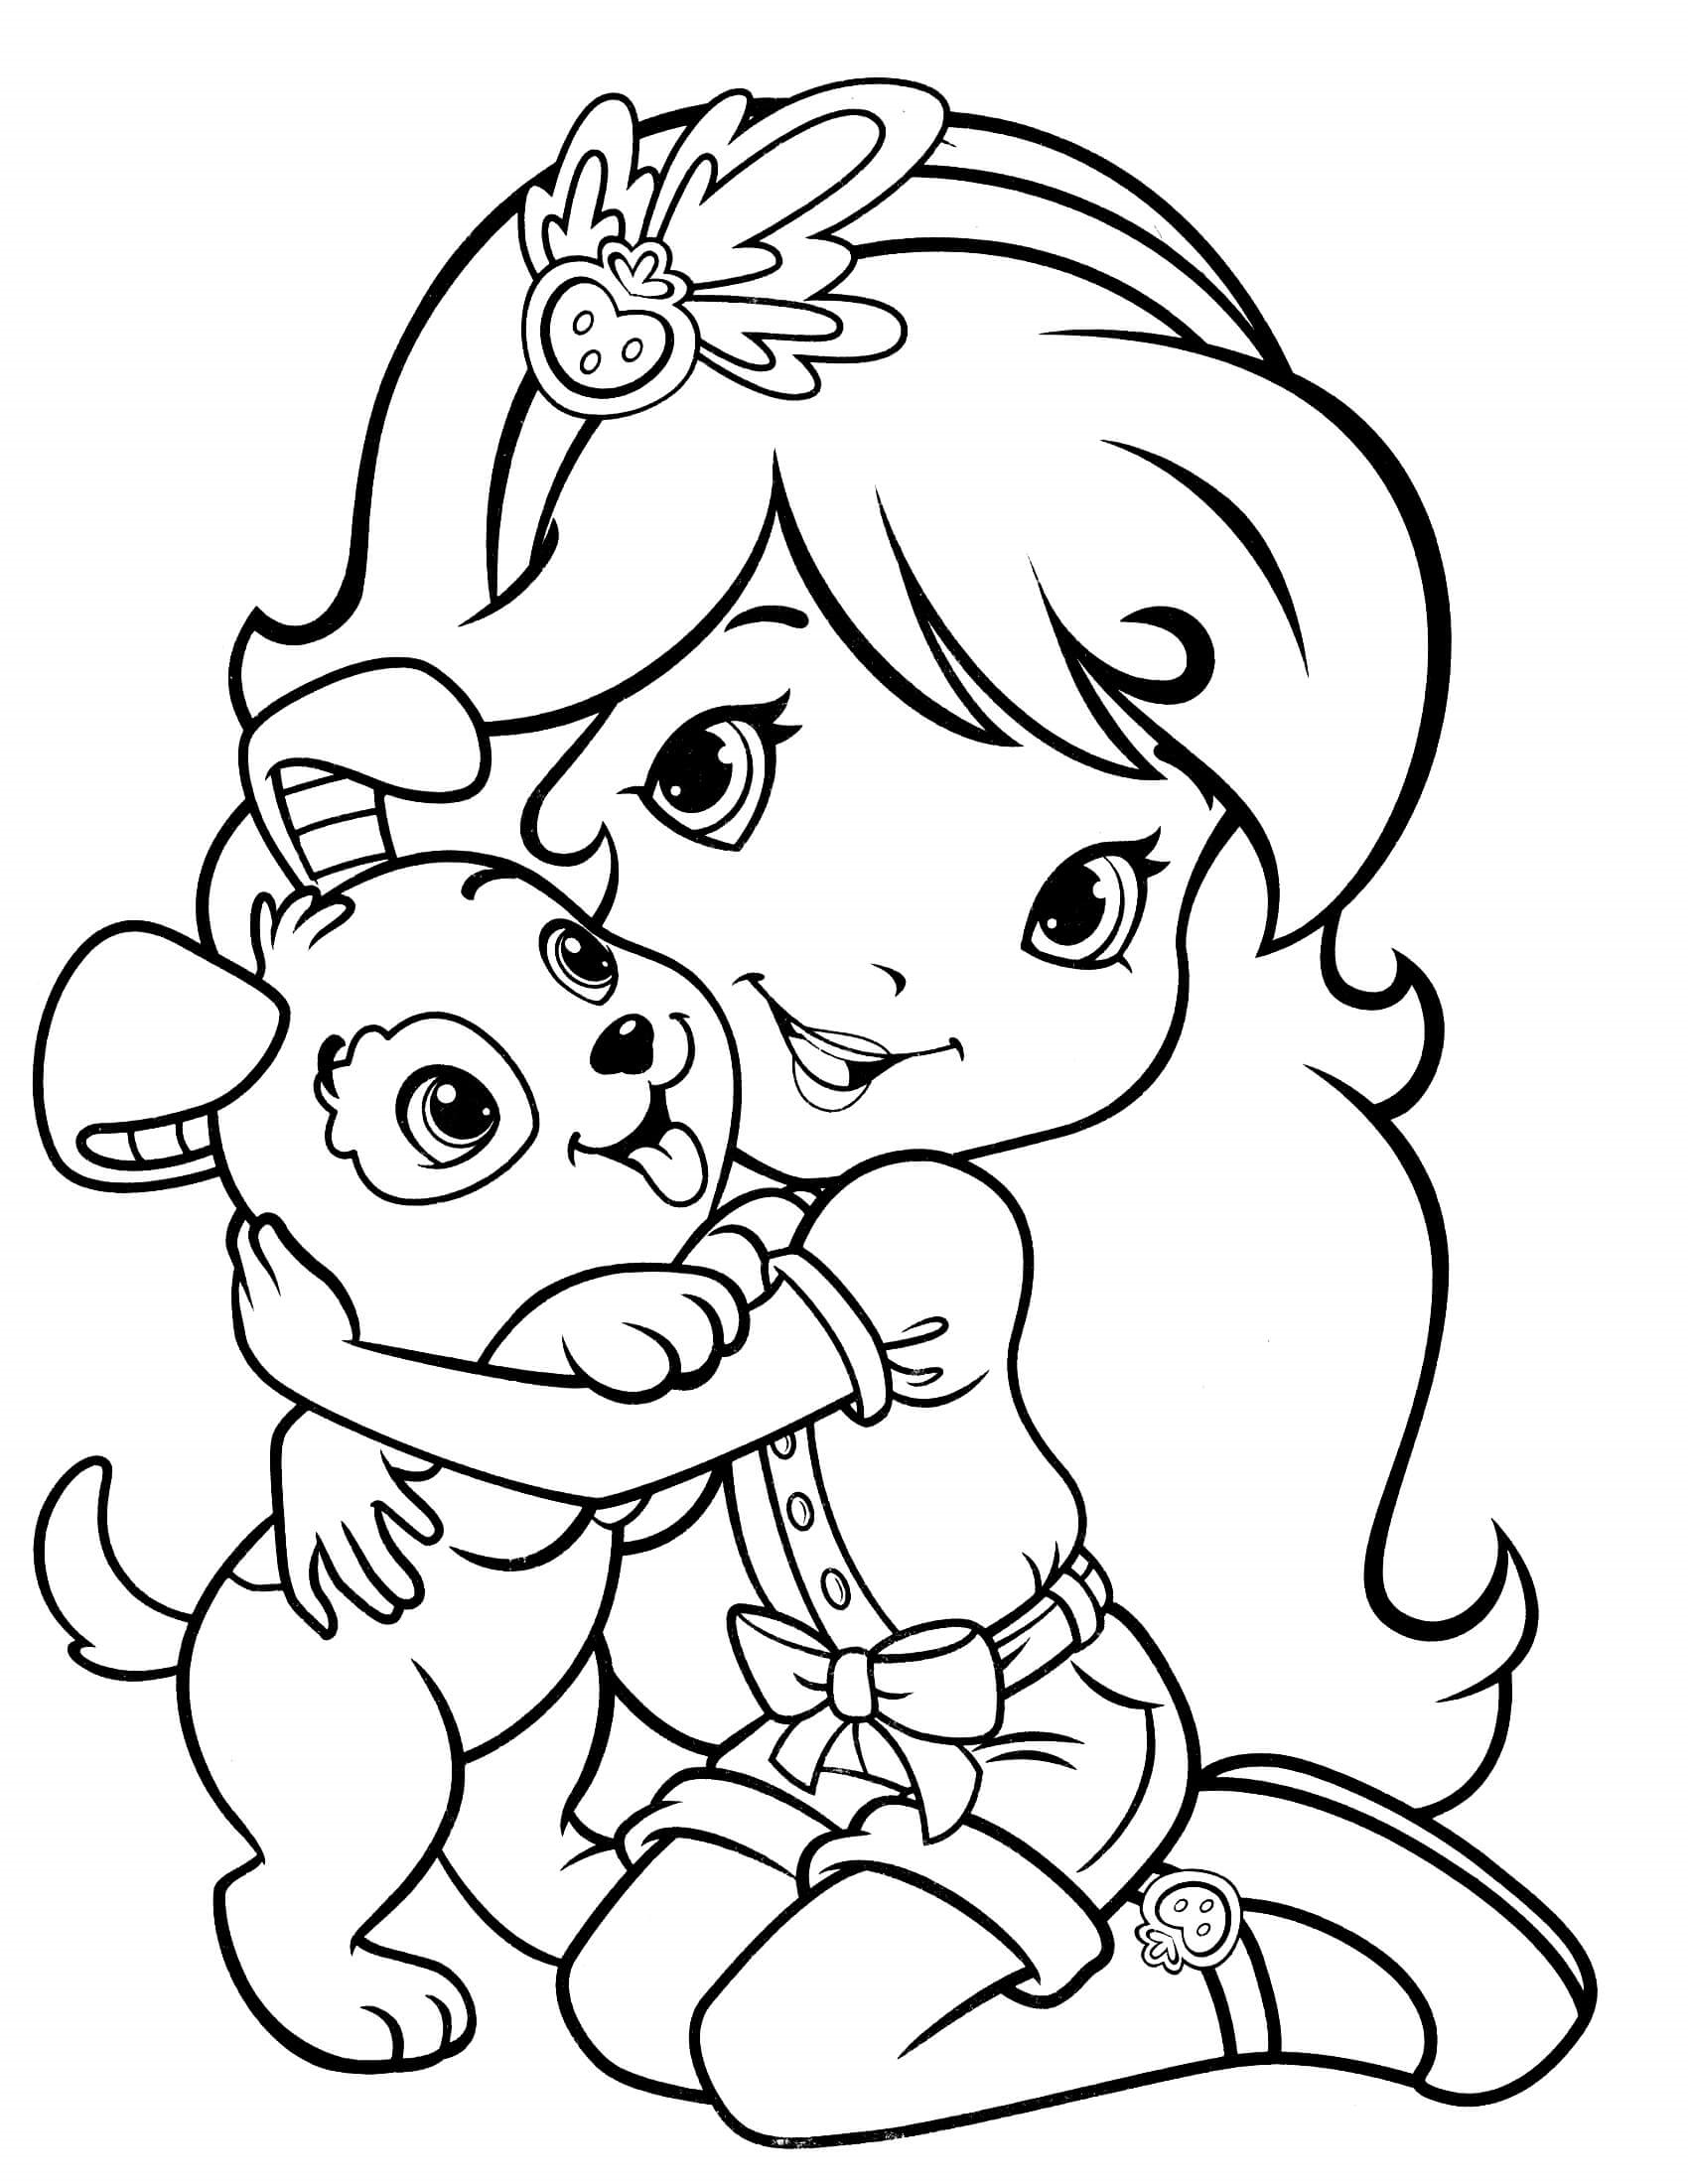 strawberry shortcake pictures to color strawberry shortcake coloring pages for kids learning to pictures shortcake color strawberry